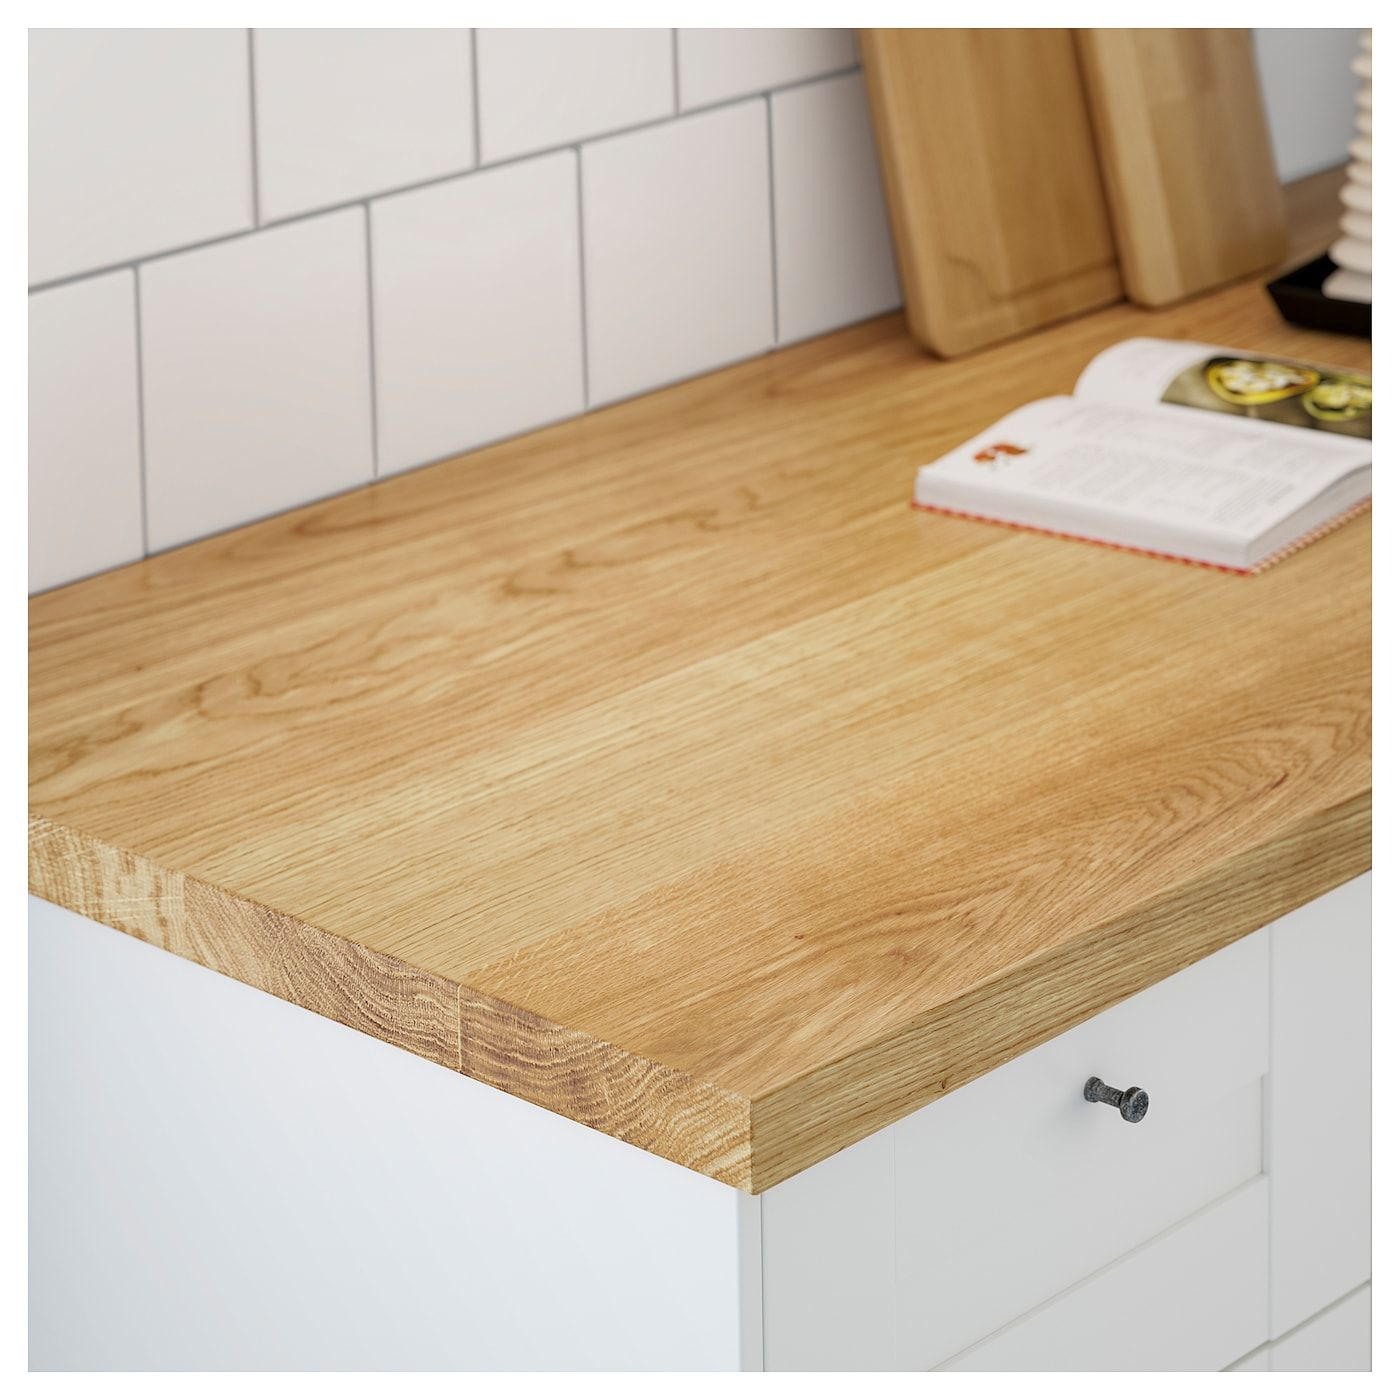 Mollekulla Plan De Travail Chene Plaque 186x3 Ikea In 2020 Countertops Wood Worktop Wood Countertops